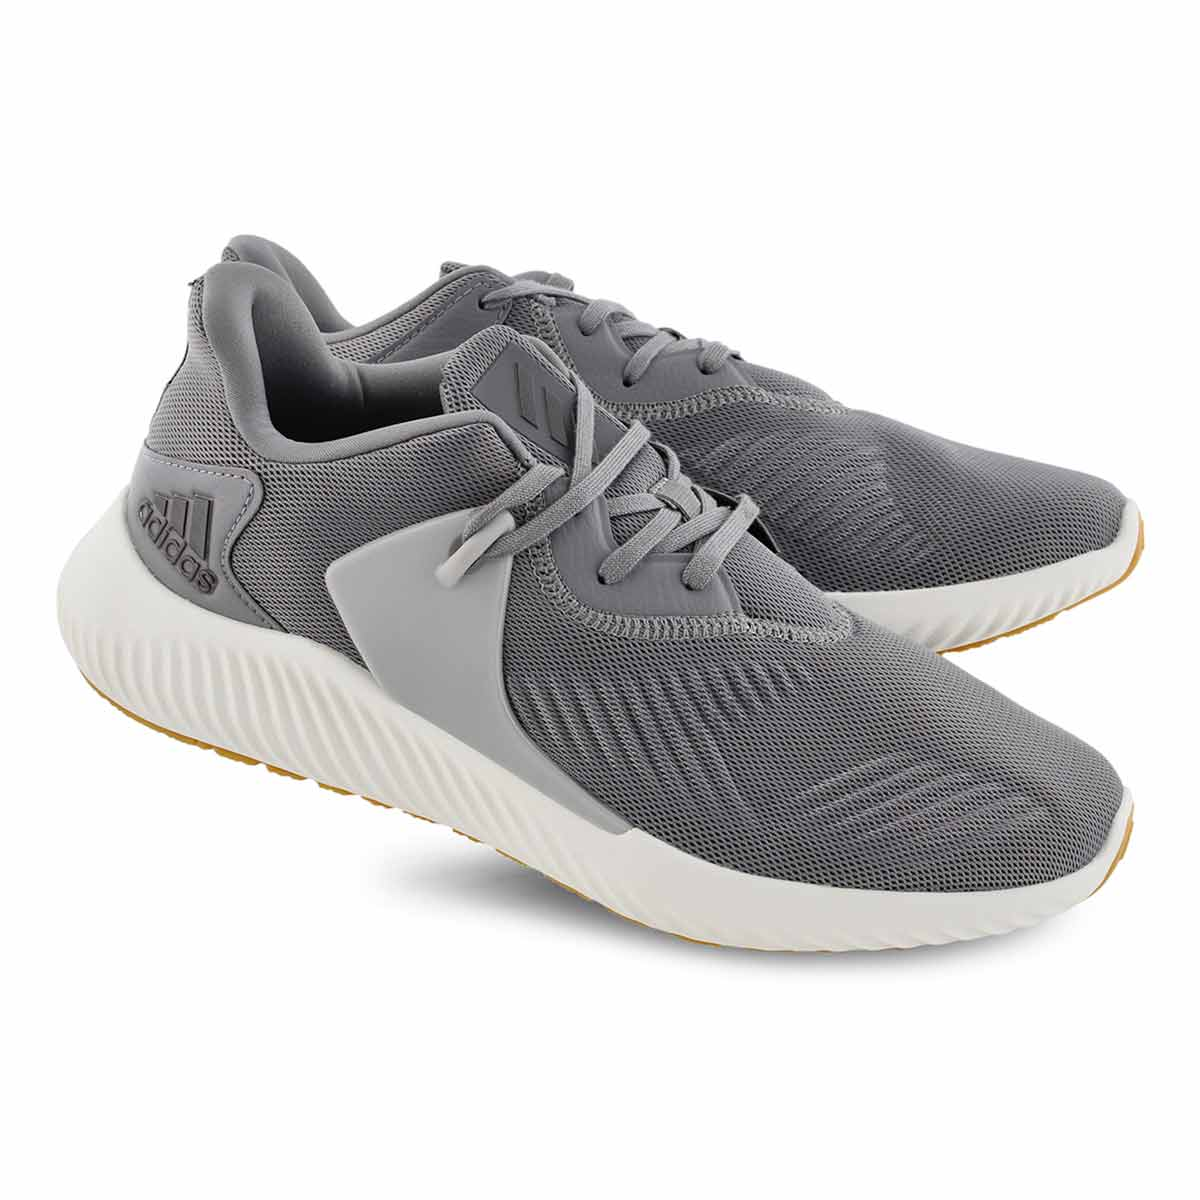 Mns Alphabounce RC 2 M gry/gry runner